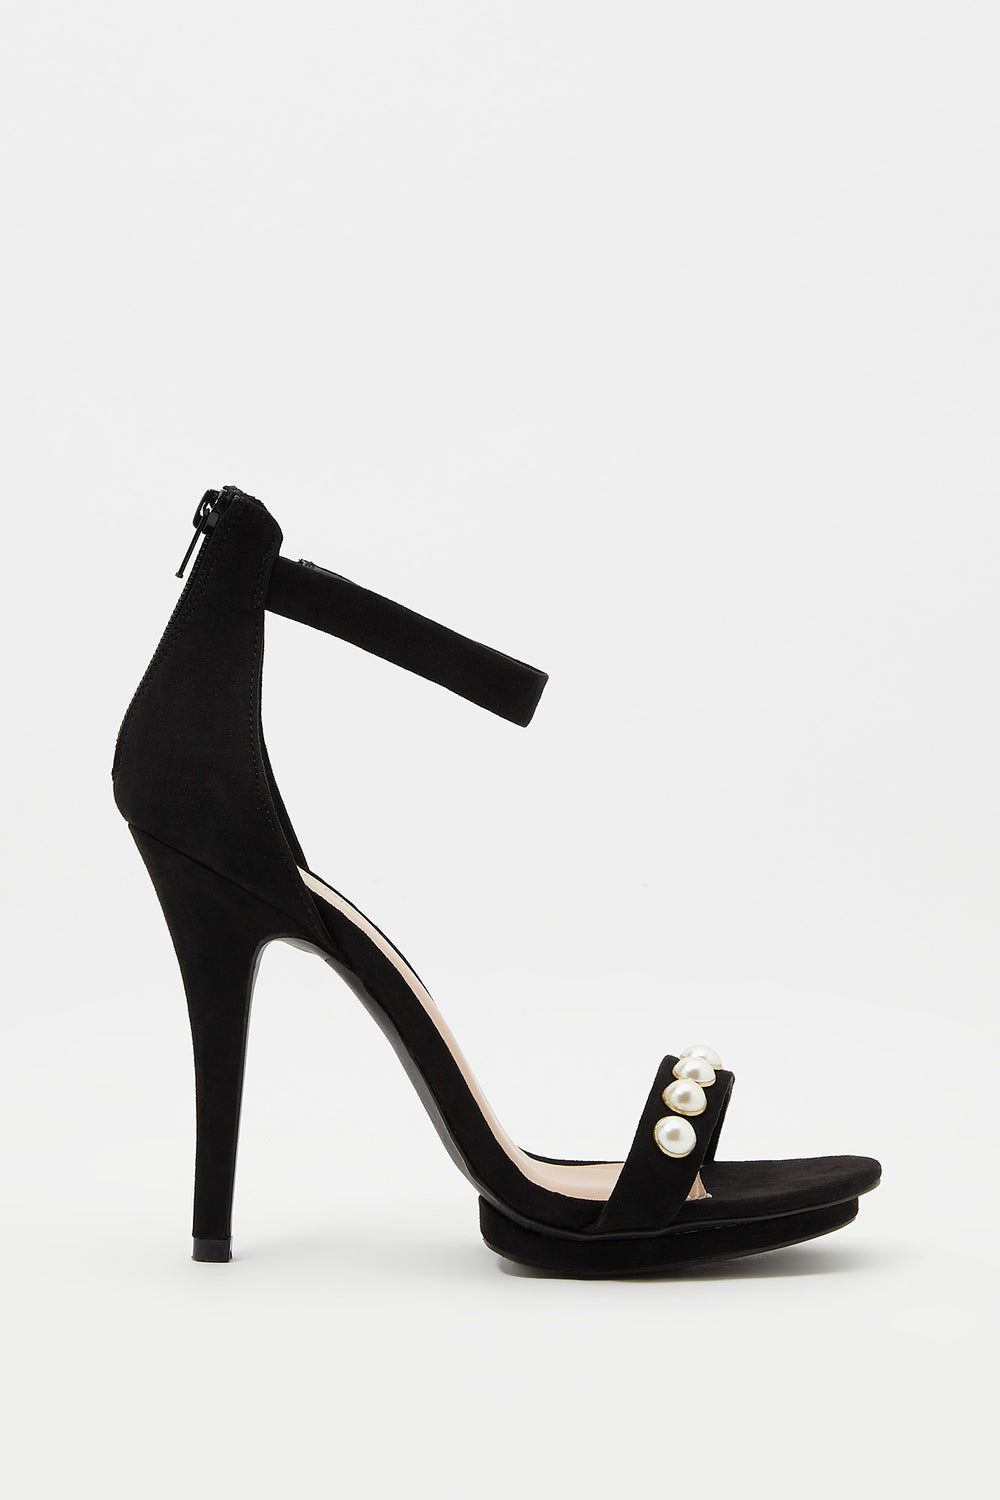 Pearl Strappy Stiletto Sandal Black